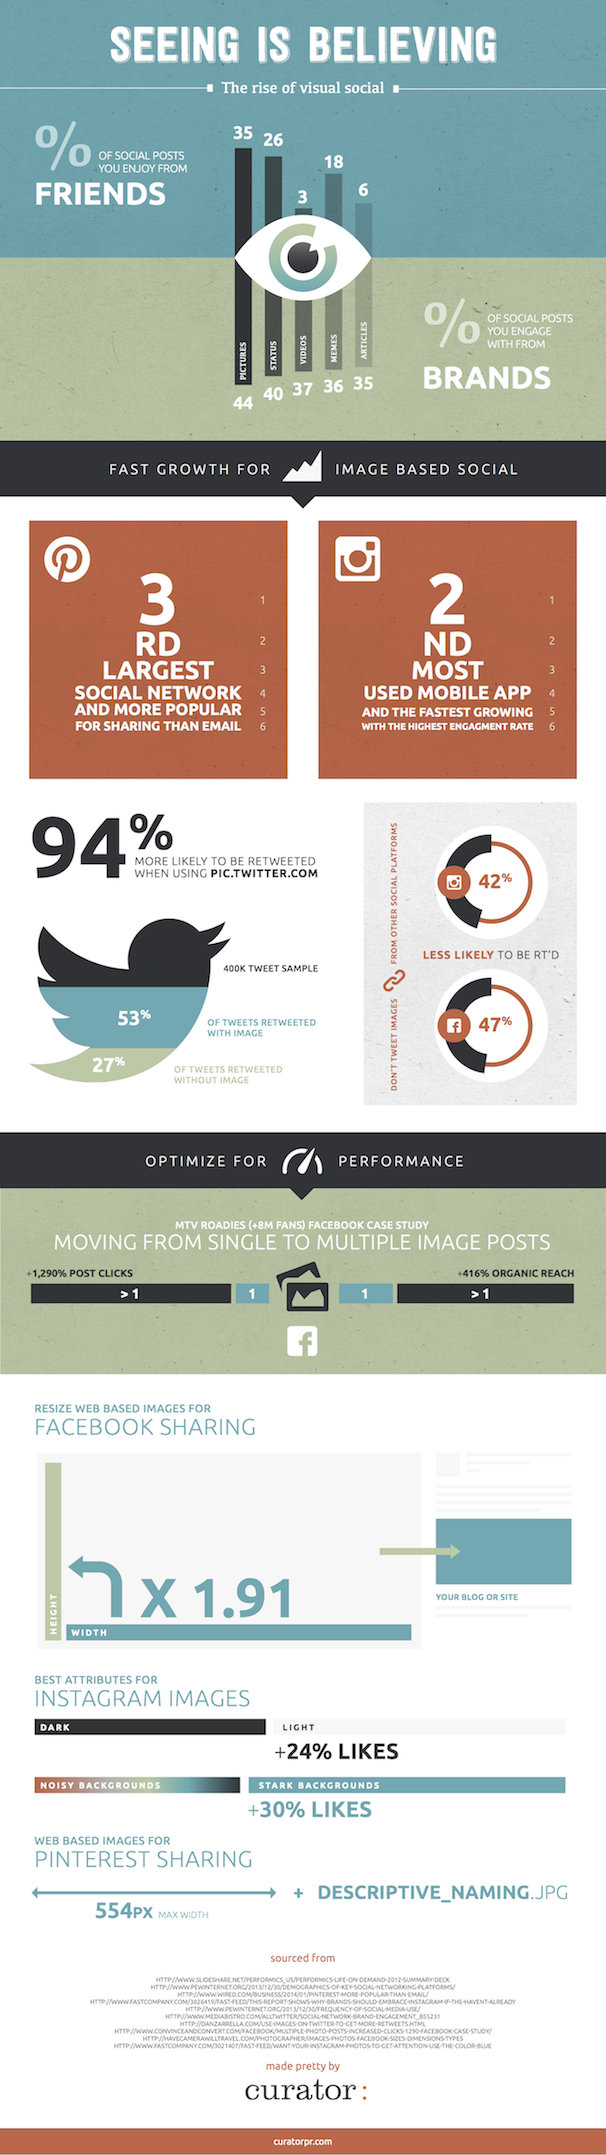 VisualSocial_infographic